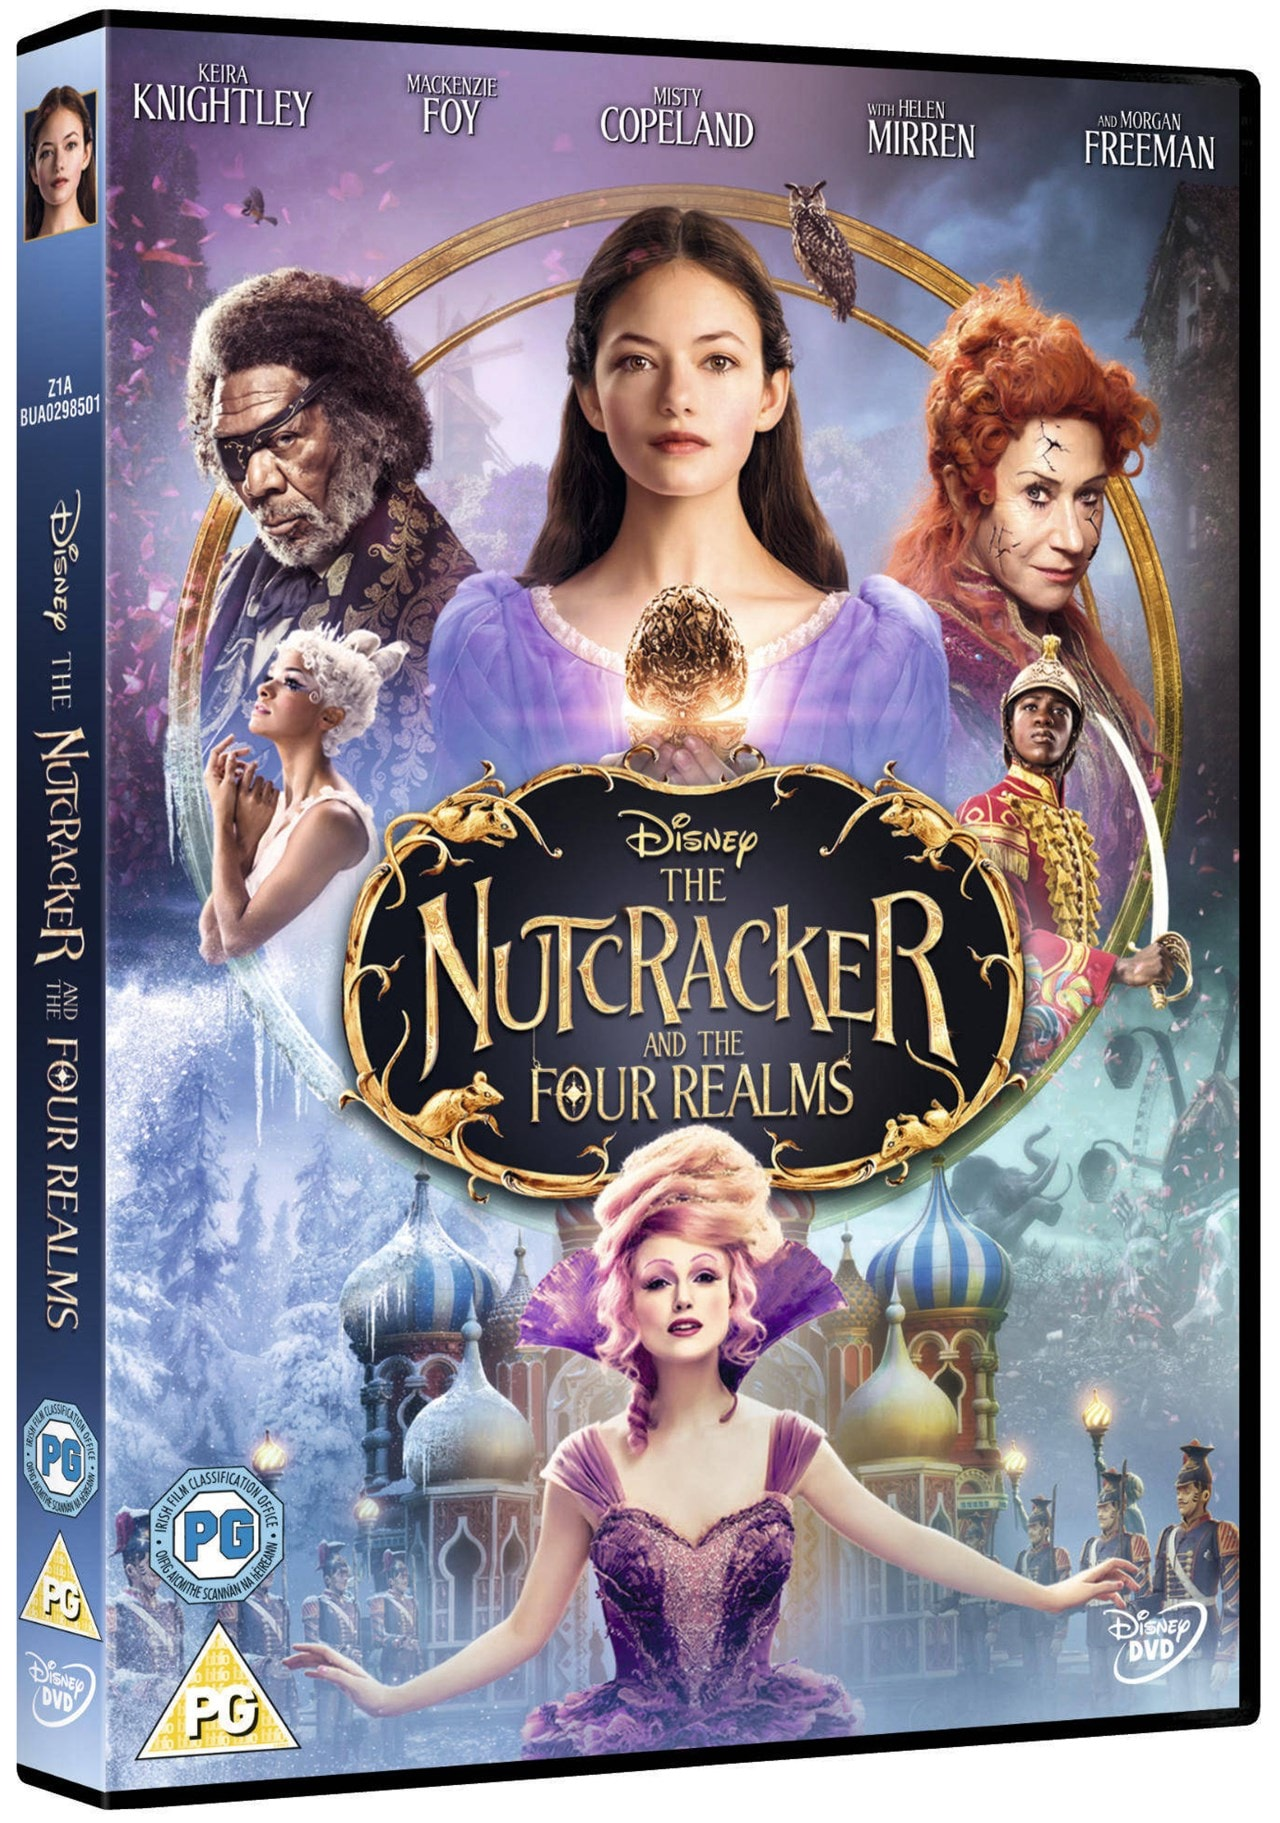 The Nutcracker and the Four Realms - 2